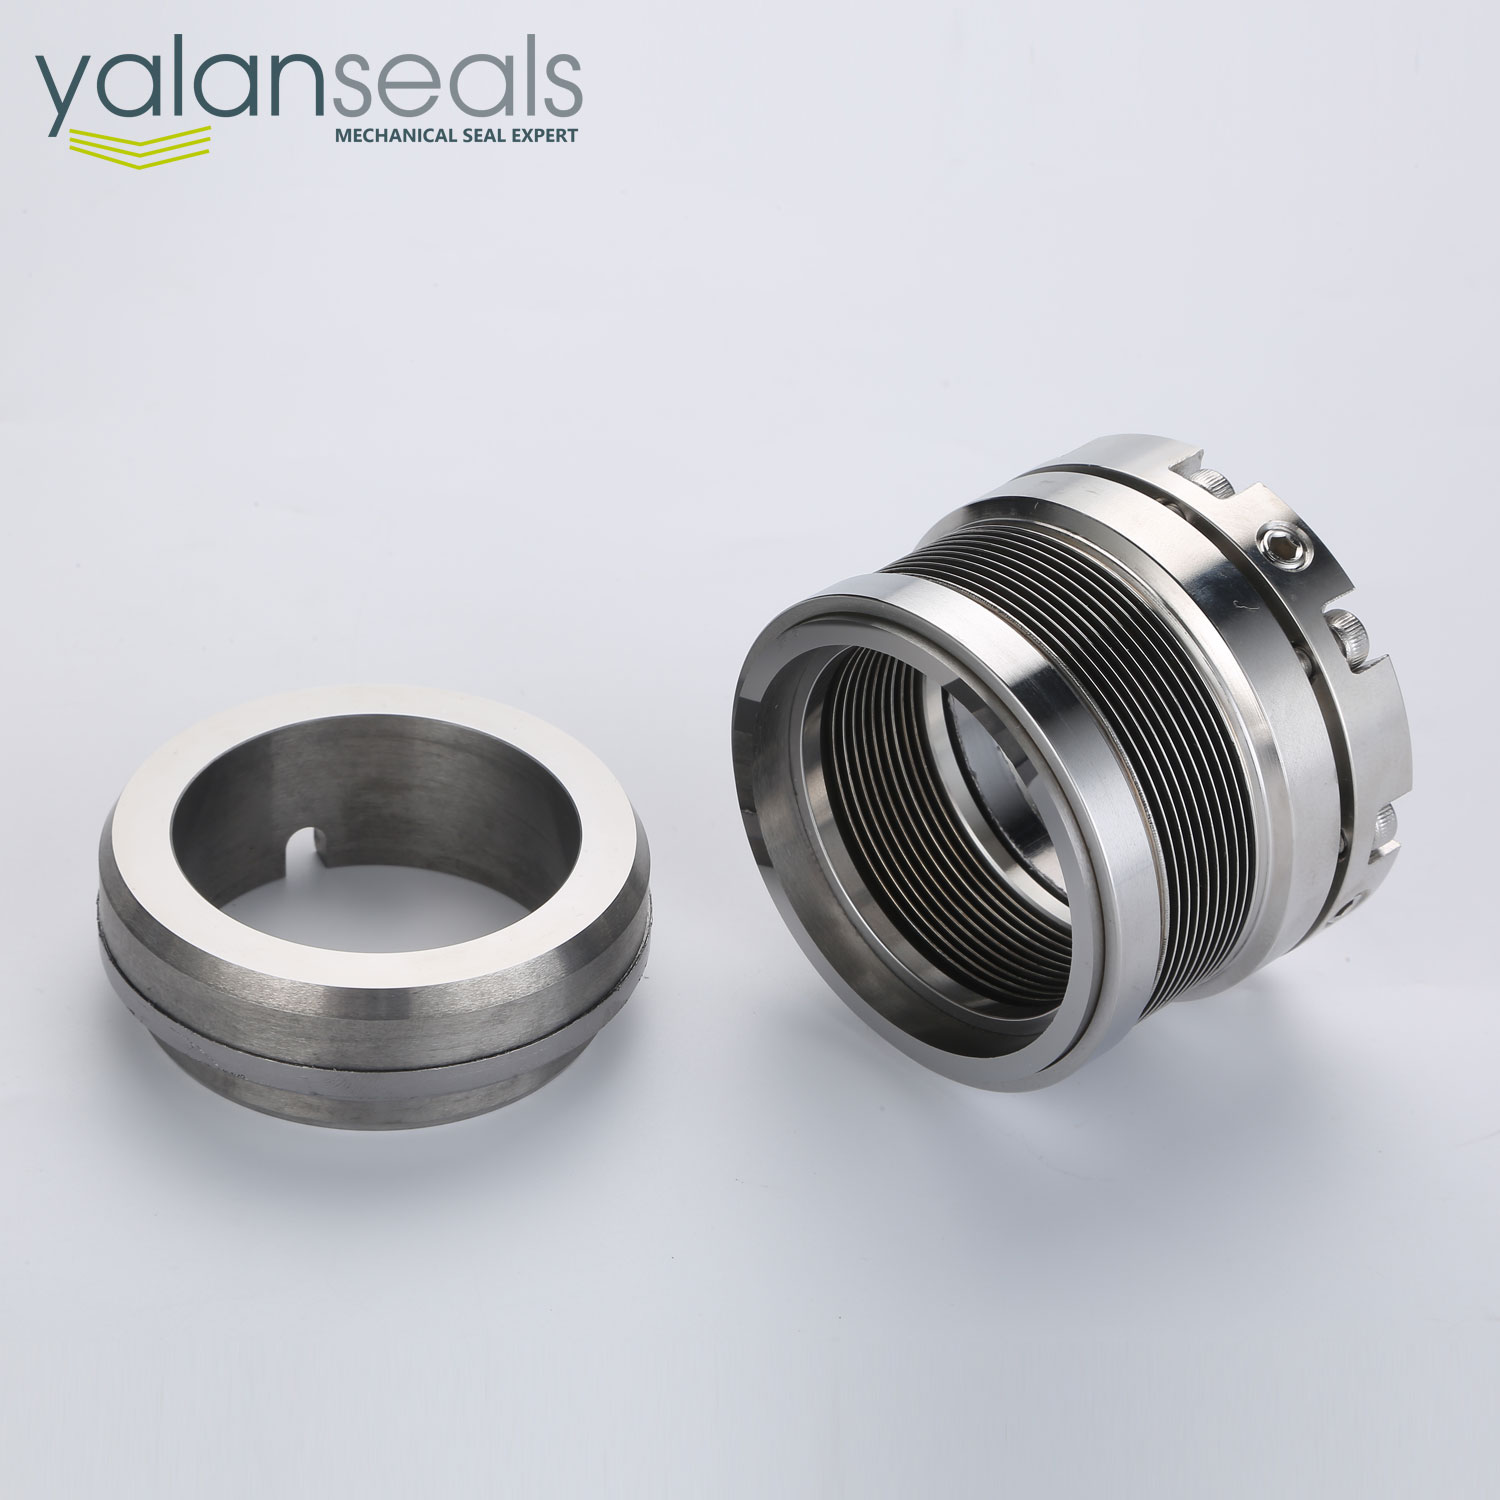 YL C65 Metal Bellow Mechanical Seals